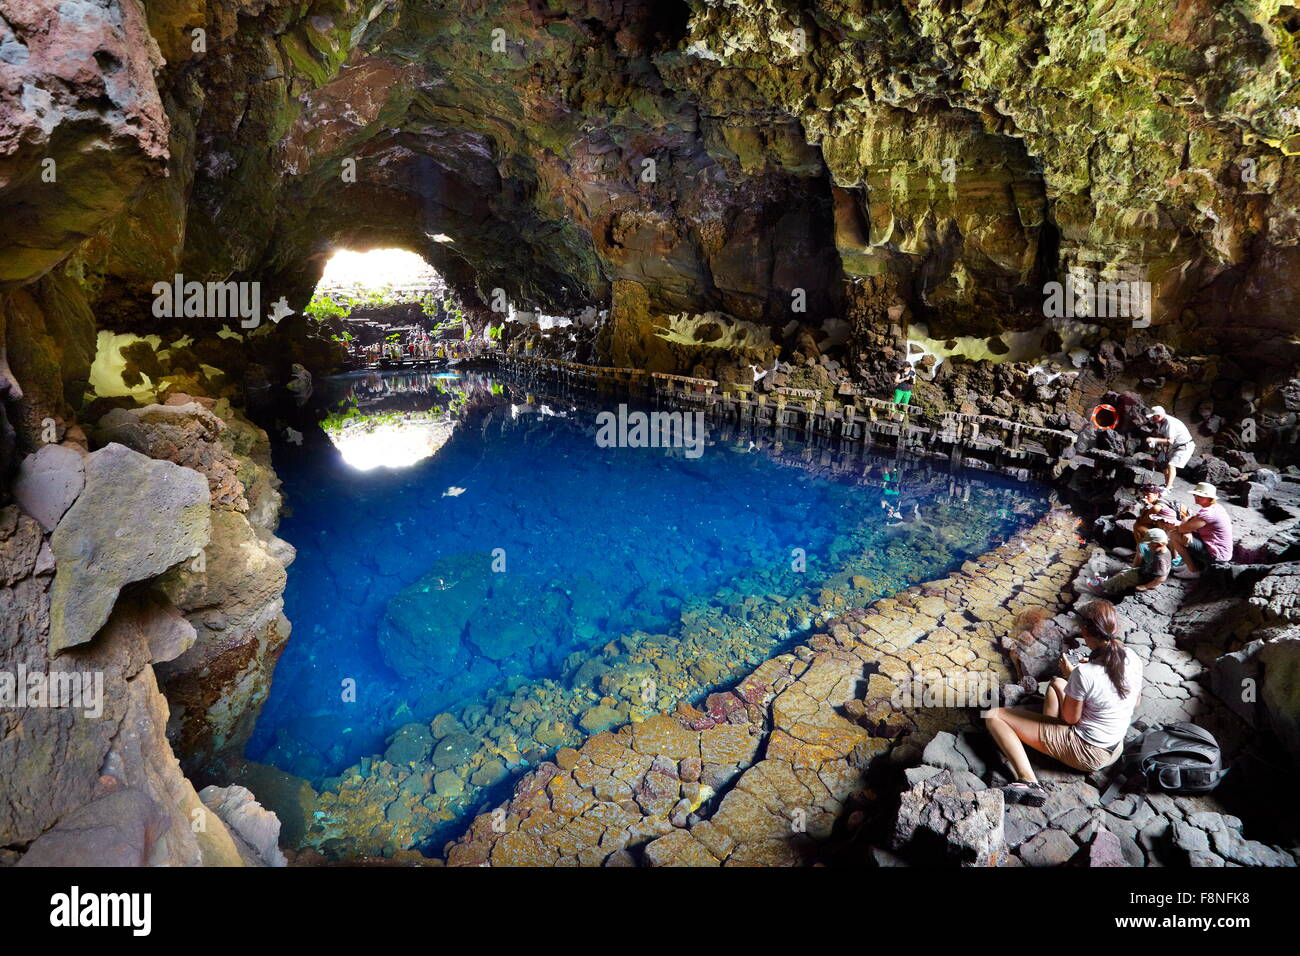 Lanzarote Island, Jameos del Aqua, underground lake in volcanic cave, Canary Islands, Spain - Stock Image